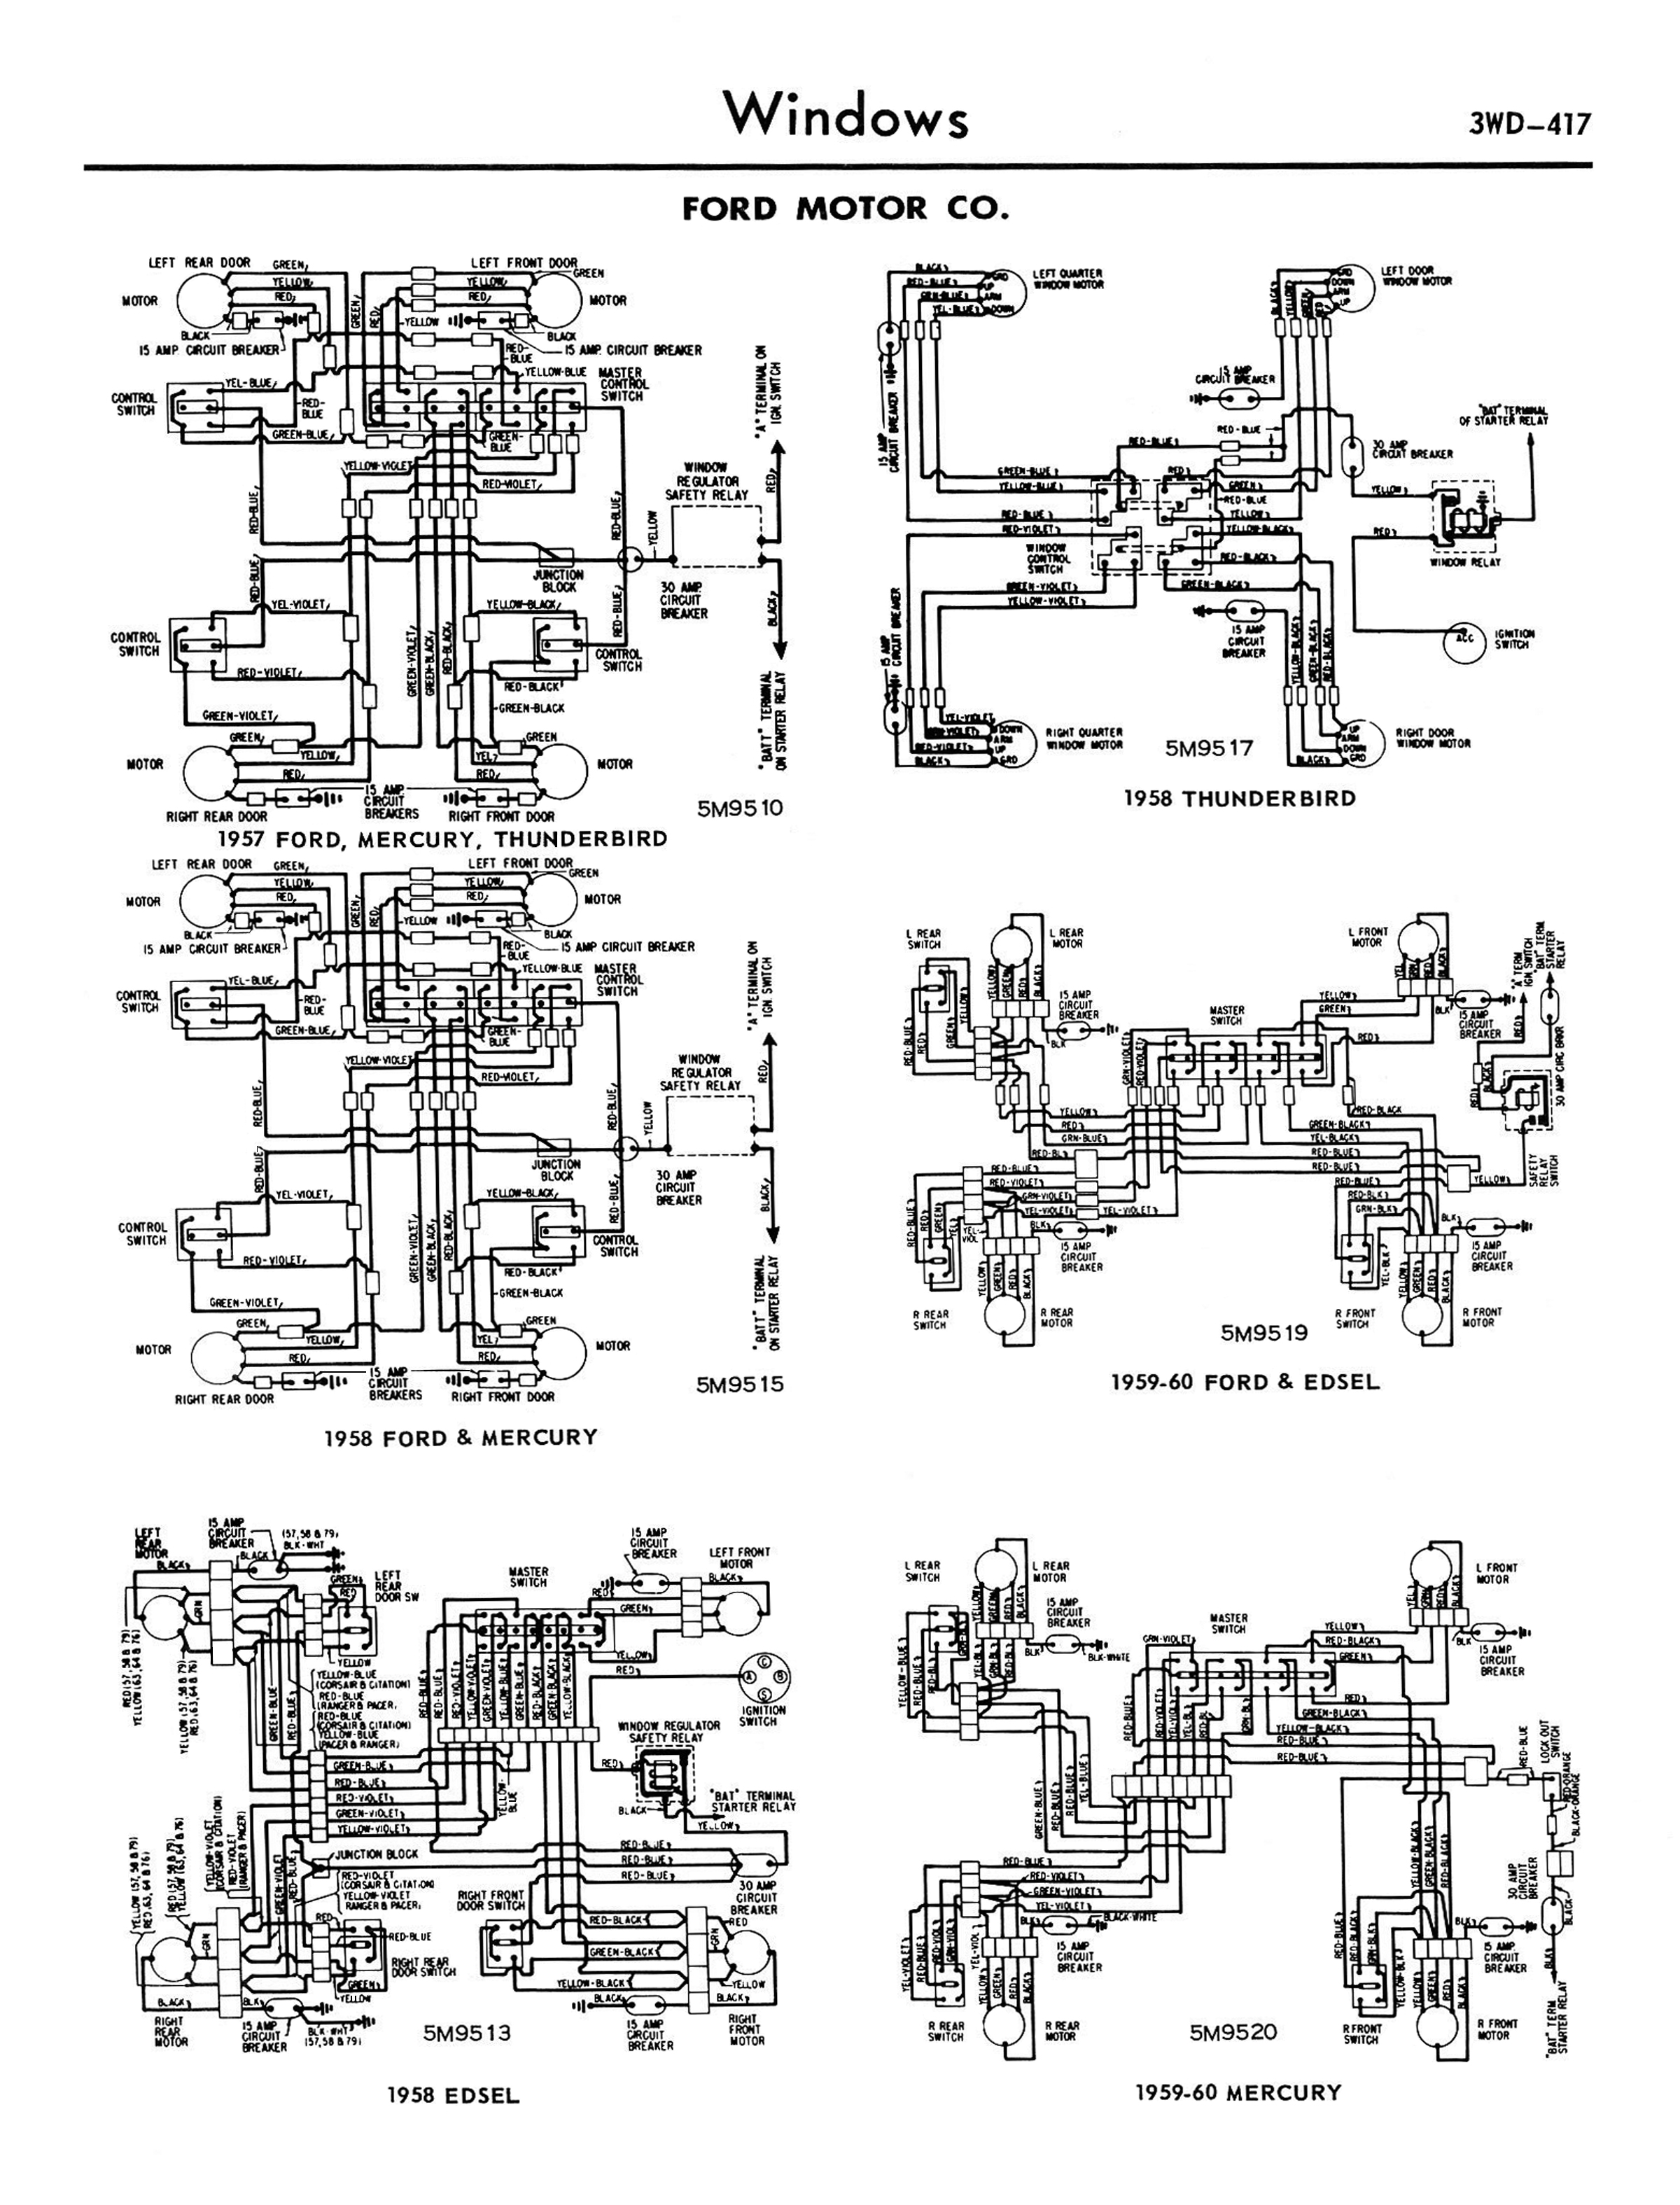 1958 68 Ford Electrical Schematics 165 Thunderbird Starter Wire Diagram 5